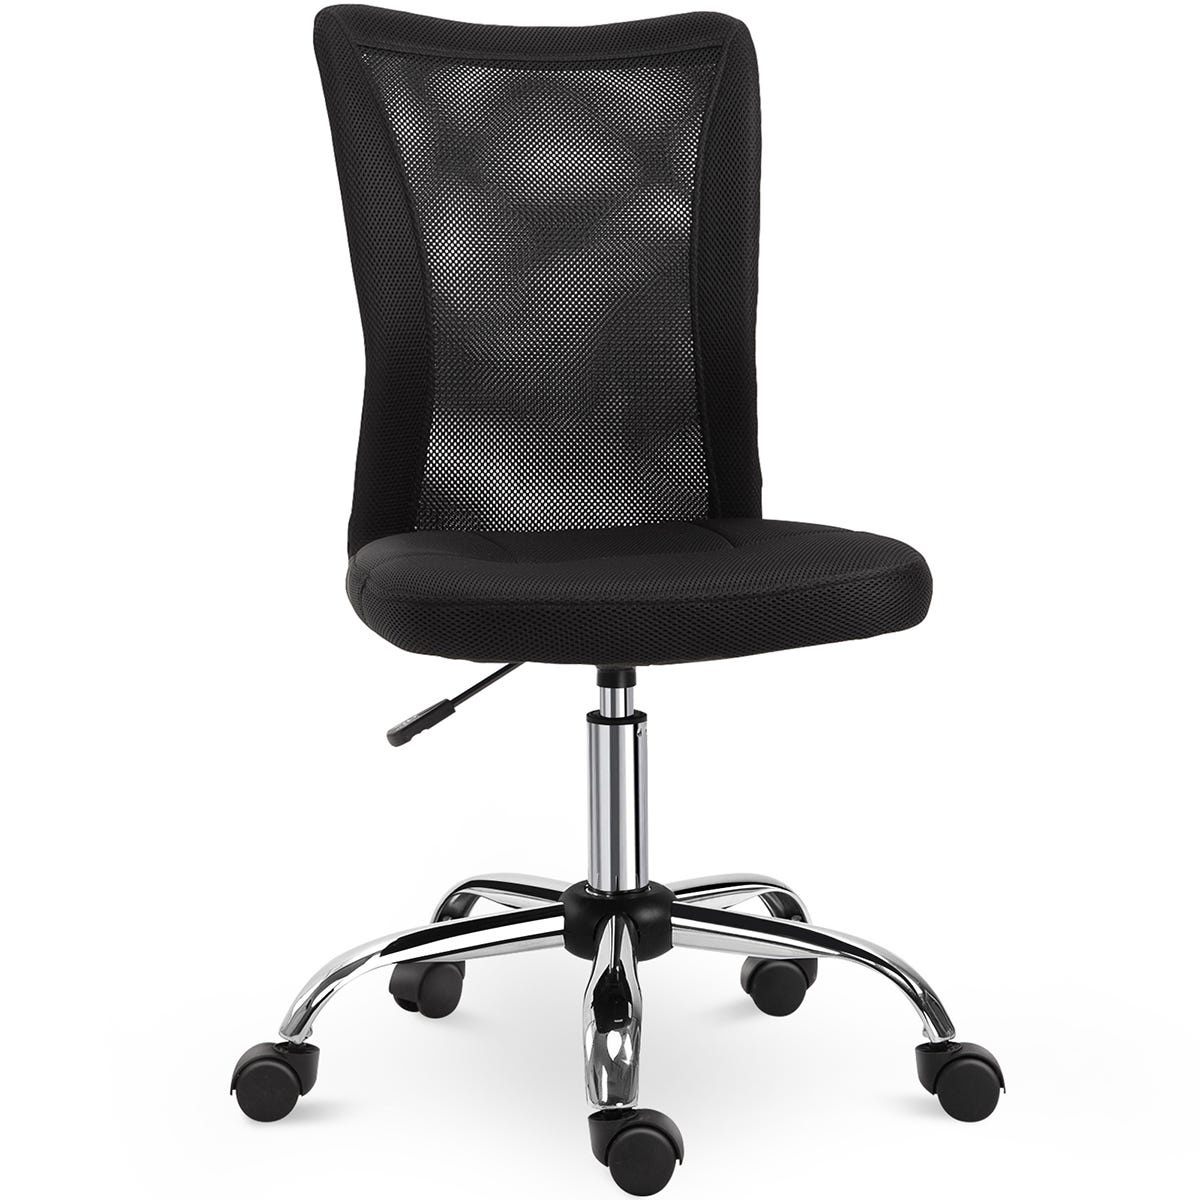 Solstice Armless Ergonomic Mesh Office Chair with Height Adjustable Back - Black